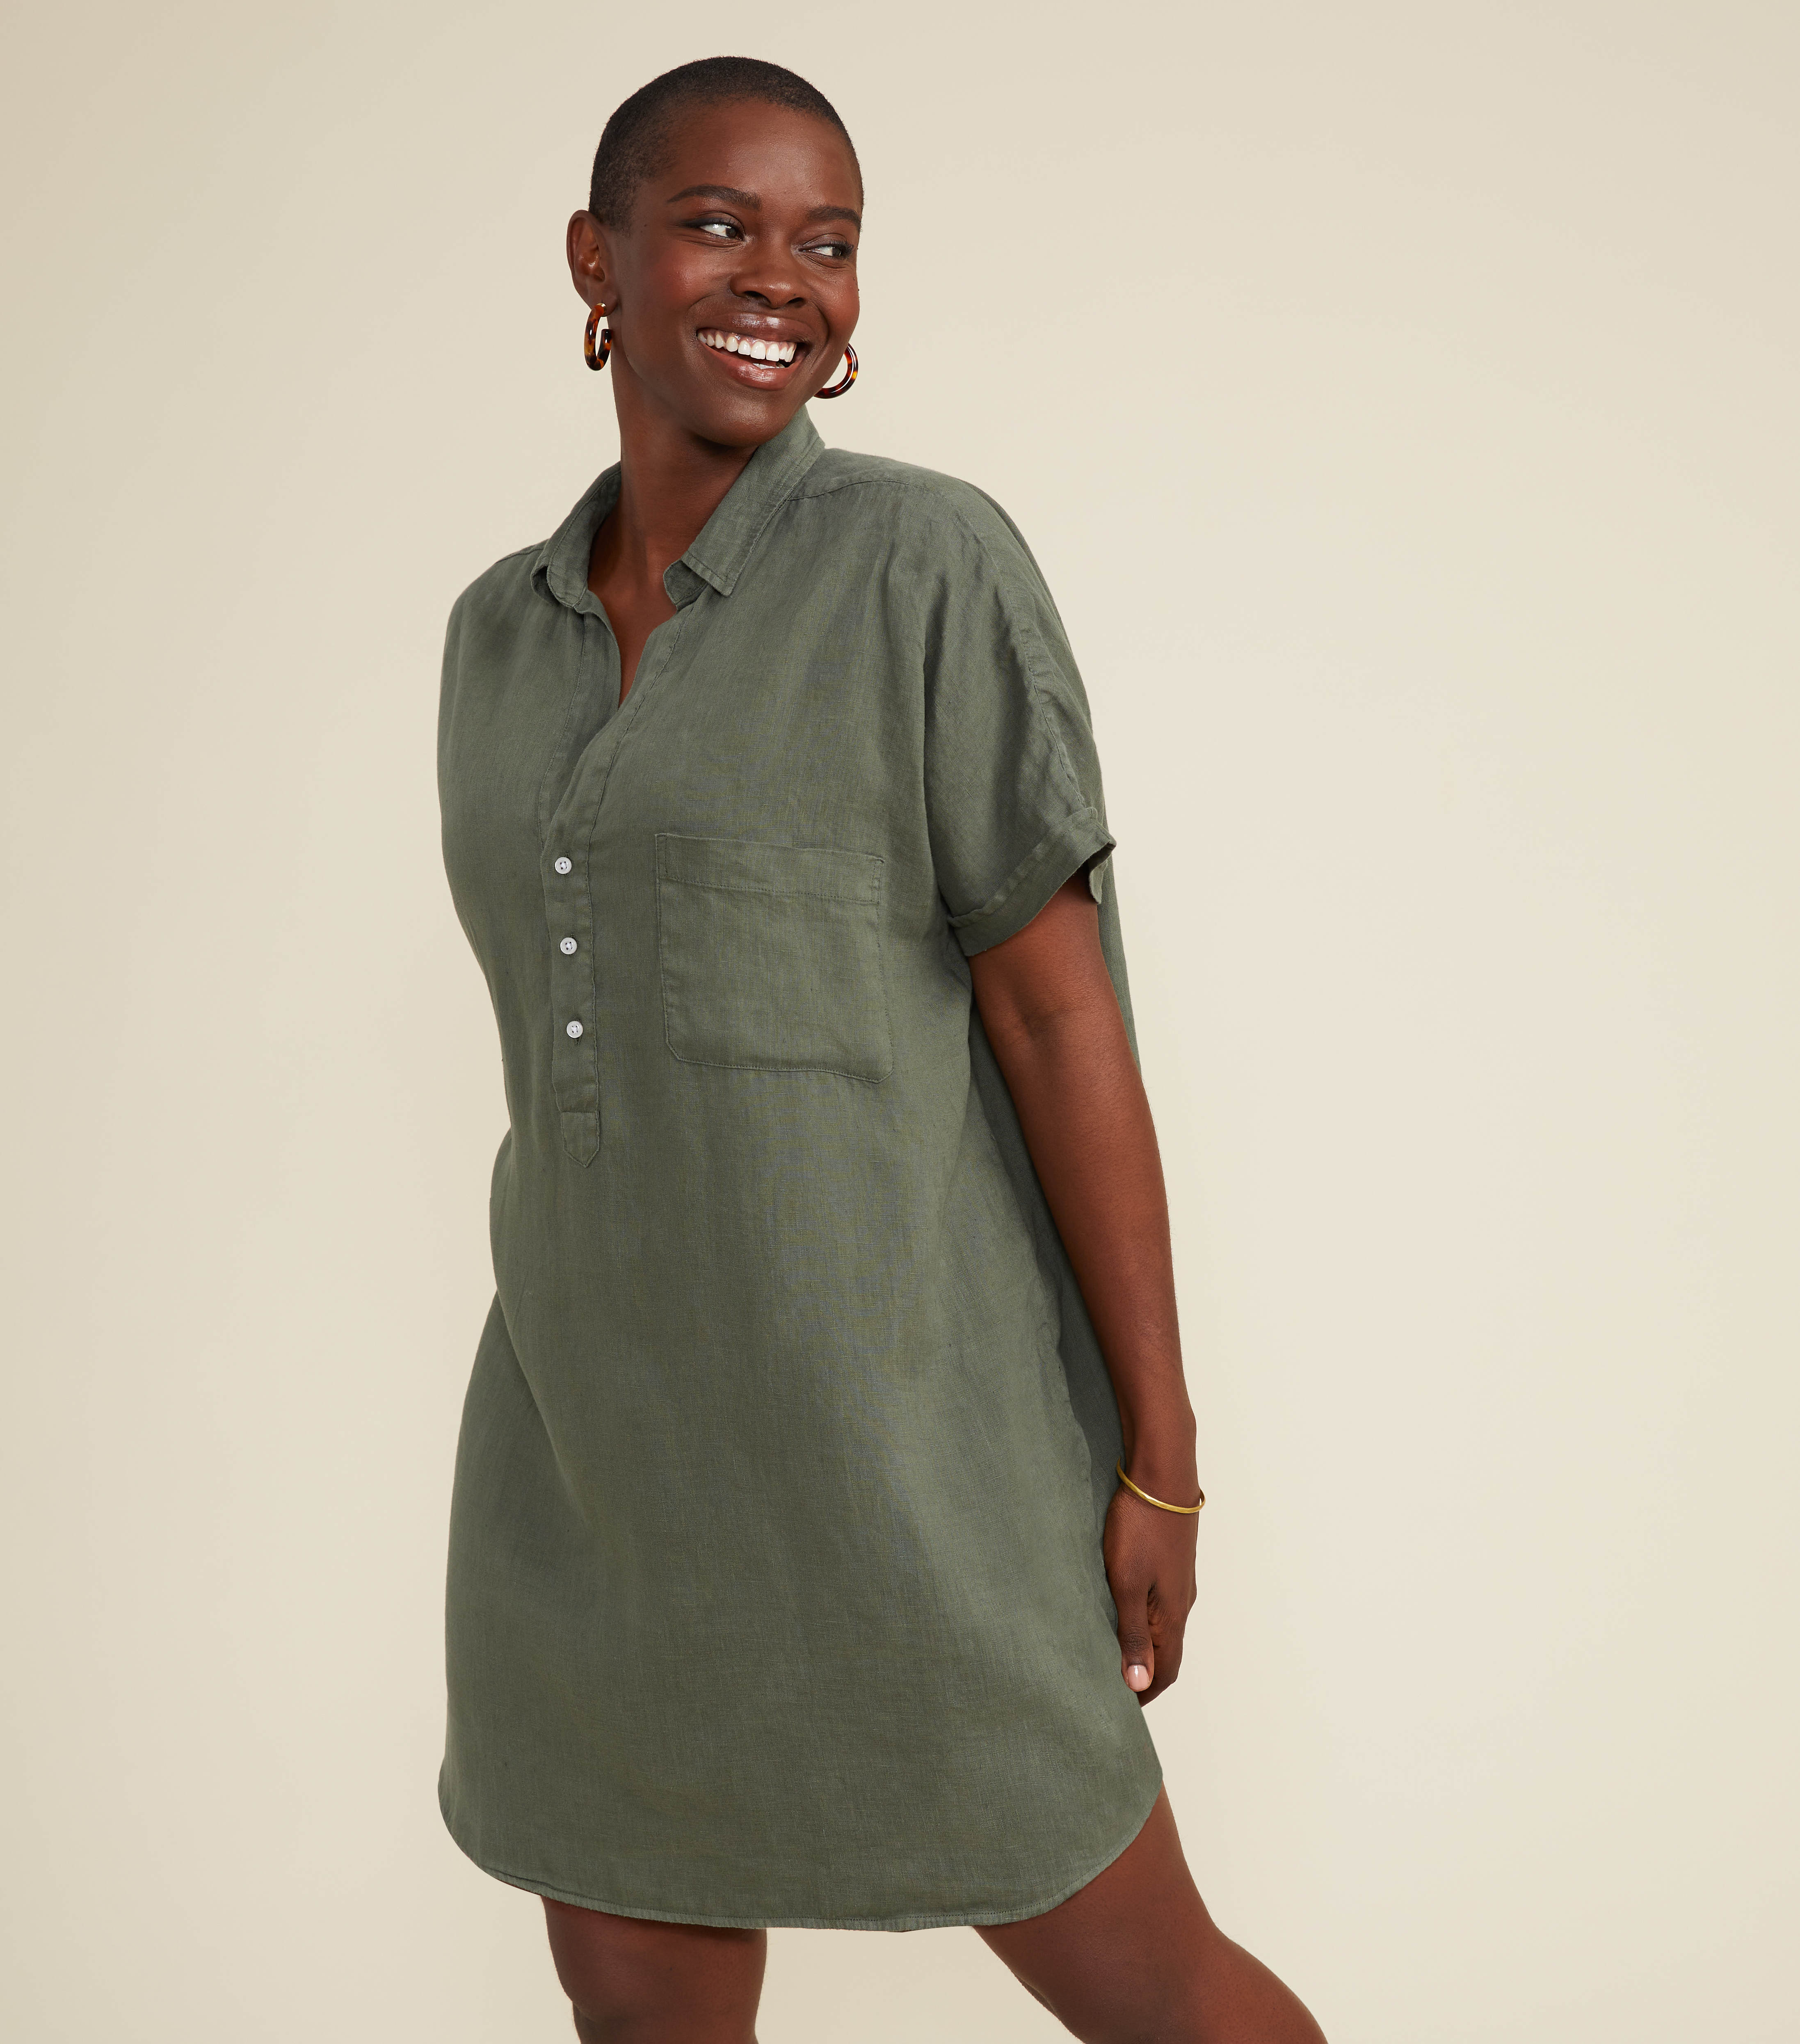 Image of The Artist Short Sleeve Dress Army Green, Tumbled Linen